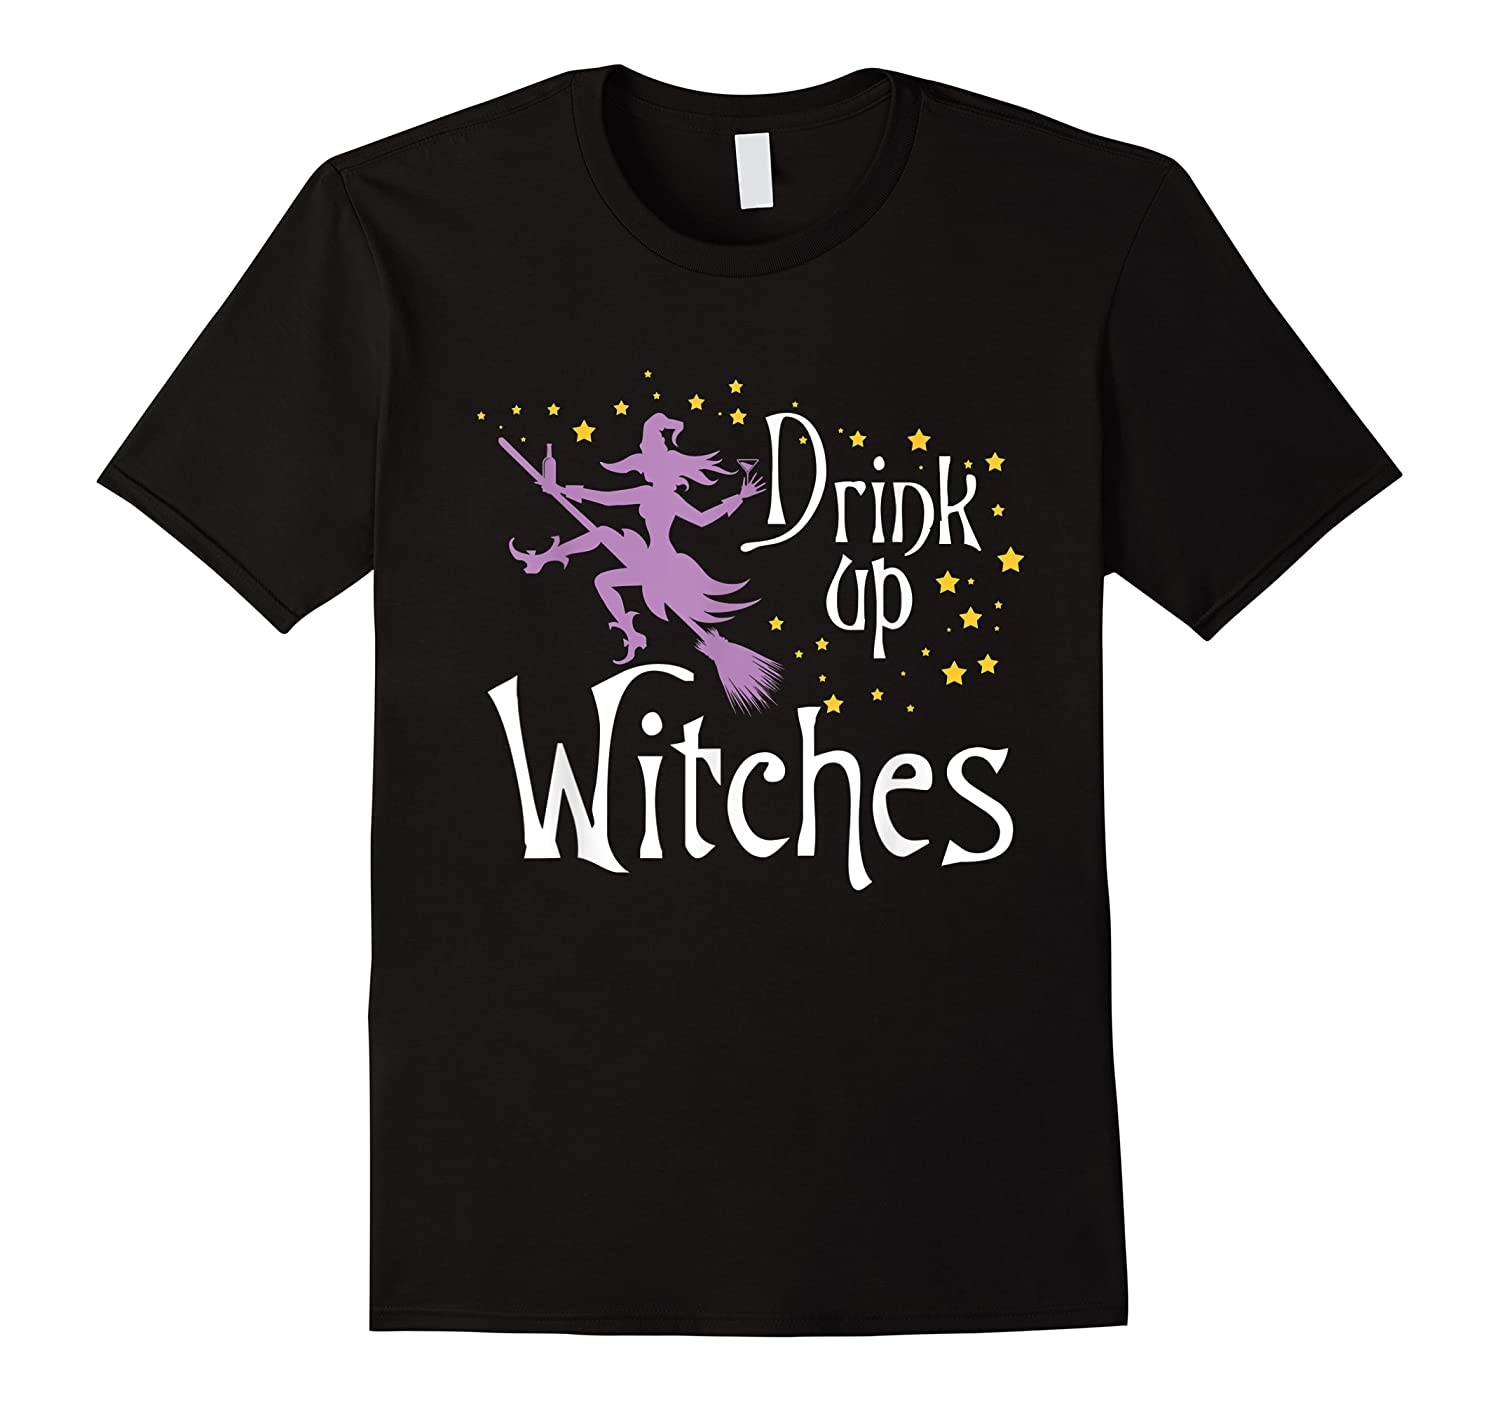 Drink Up Witches T-shirt For Halloween Drinking T-shirt